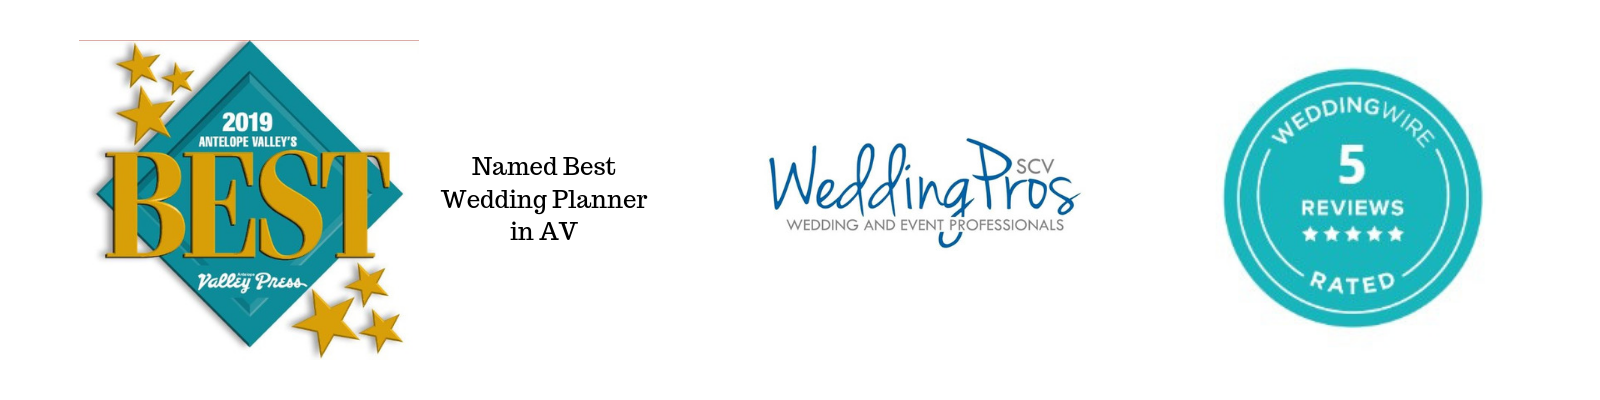 Named Best Wedding Planner in AV (3).png